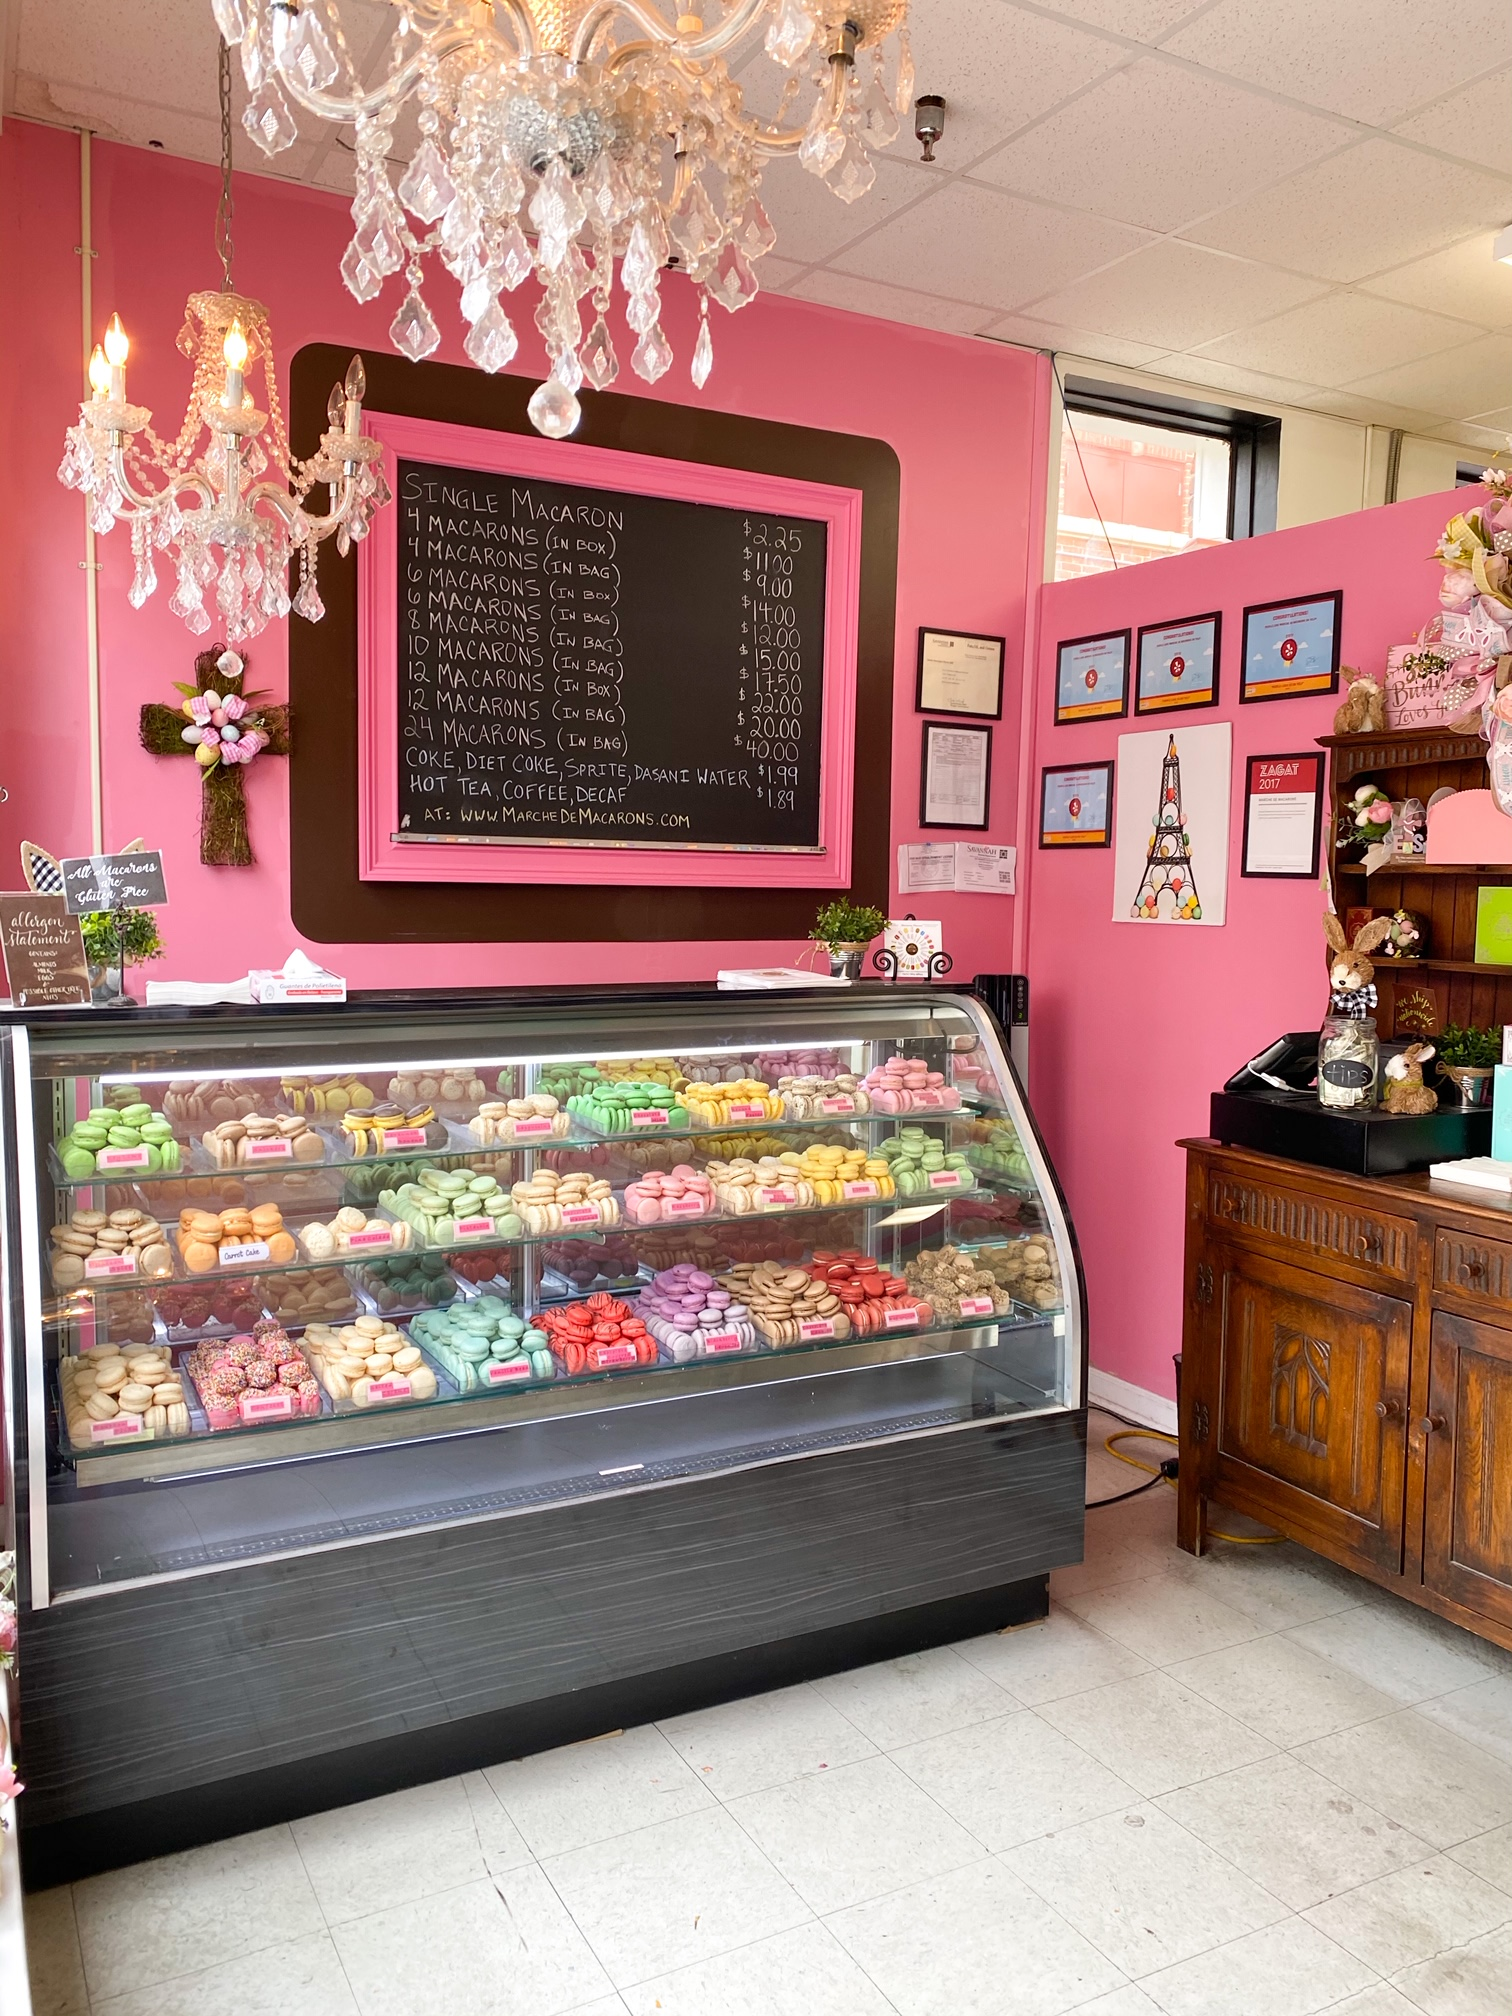 The interior of the Marche de Macarons shop in Savannah. The walls are painted bright pink and there is a large chalkboard with a pink and black frame that lists the menu for the macarons. There is a large refrigerated display case full of macarons of literally every color.